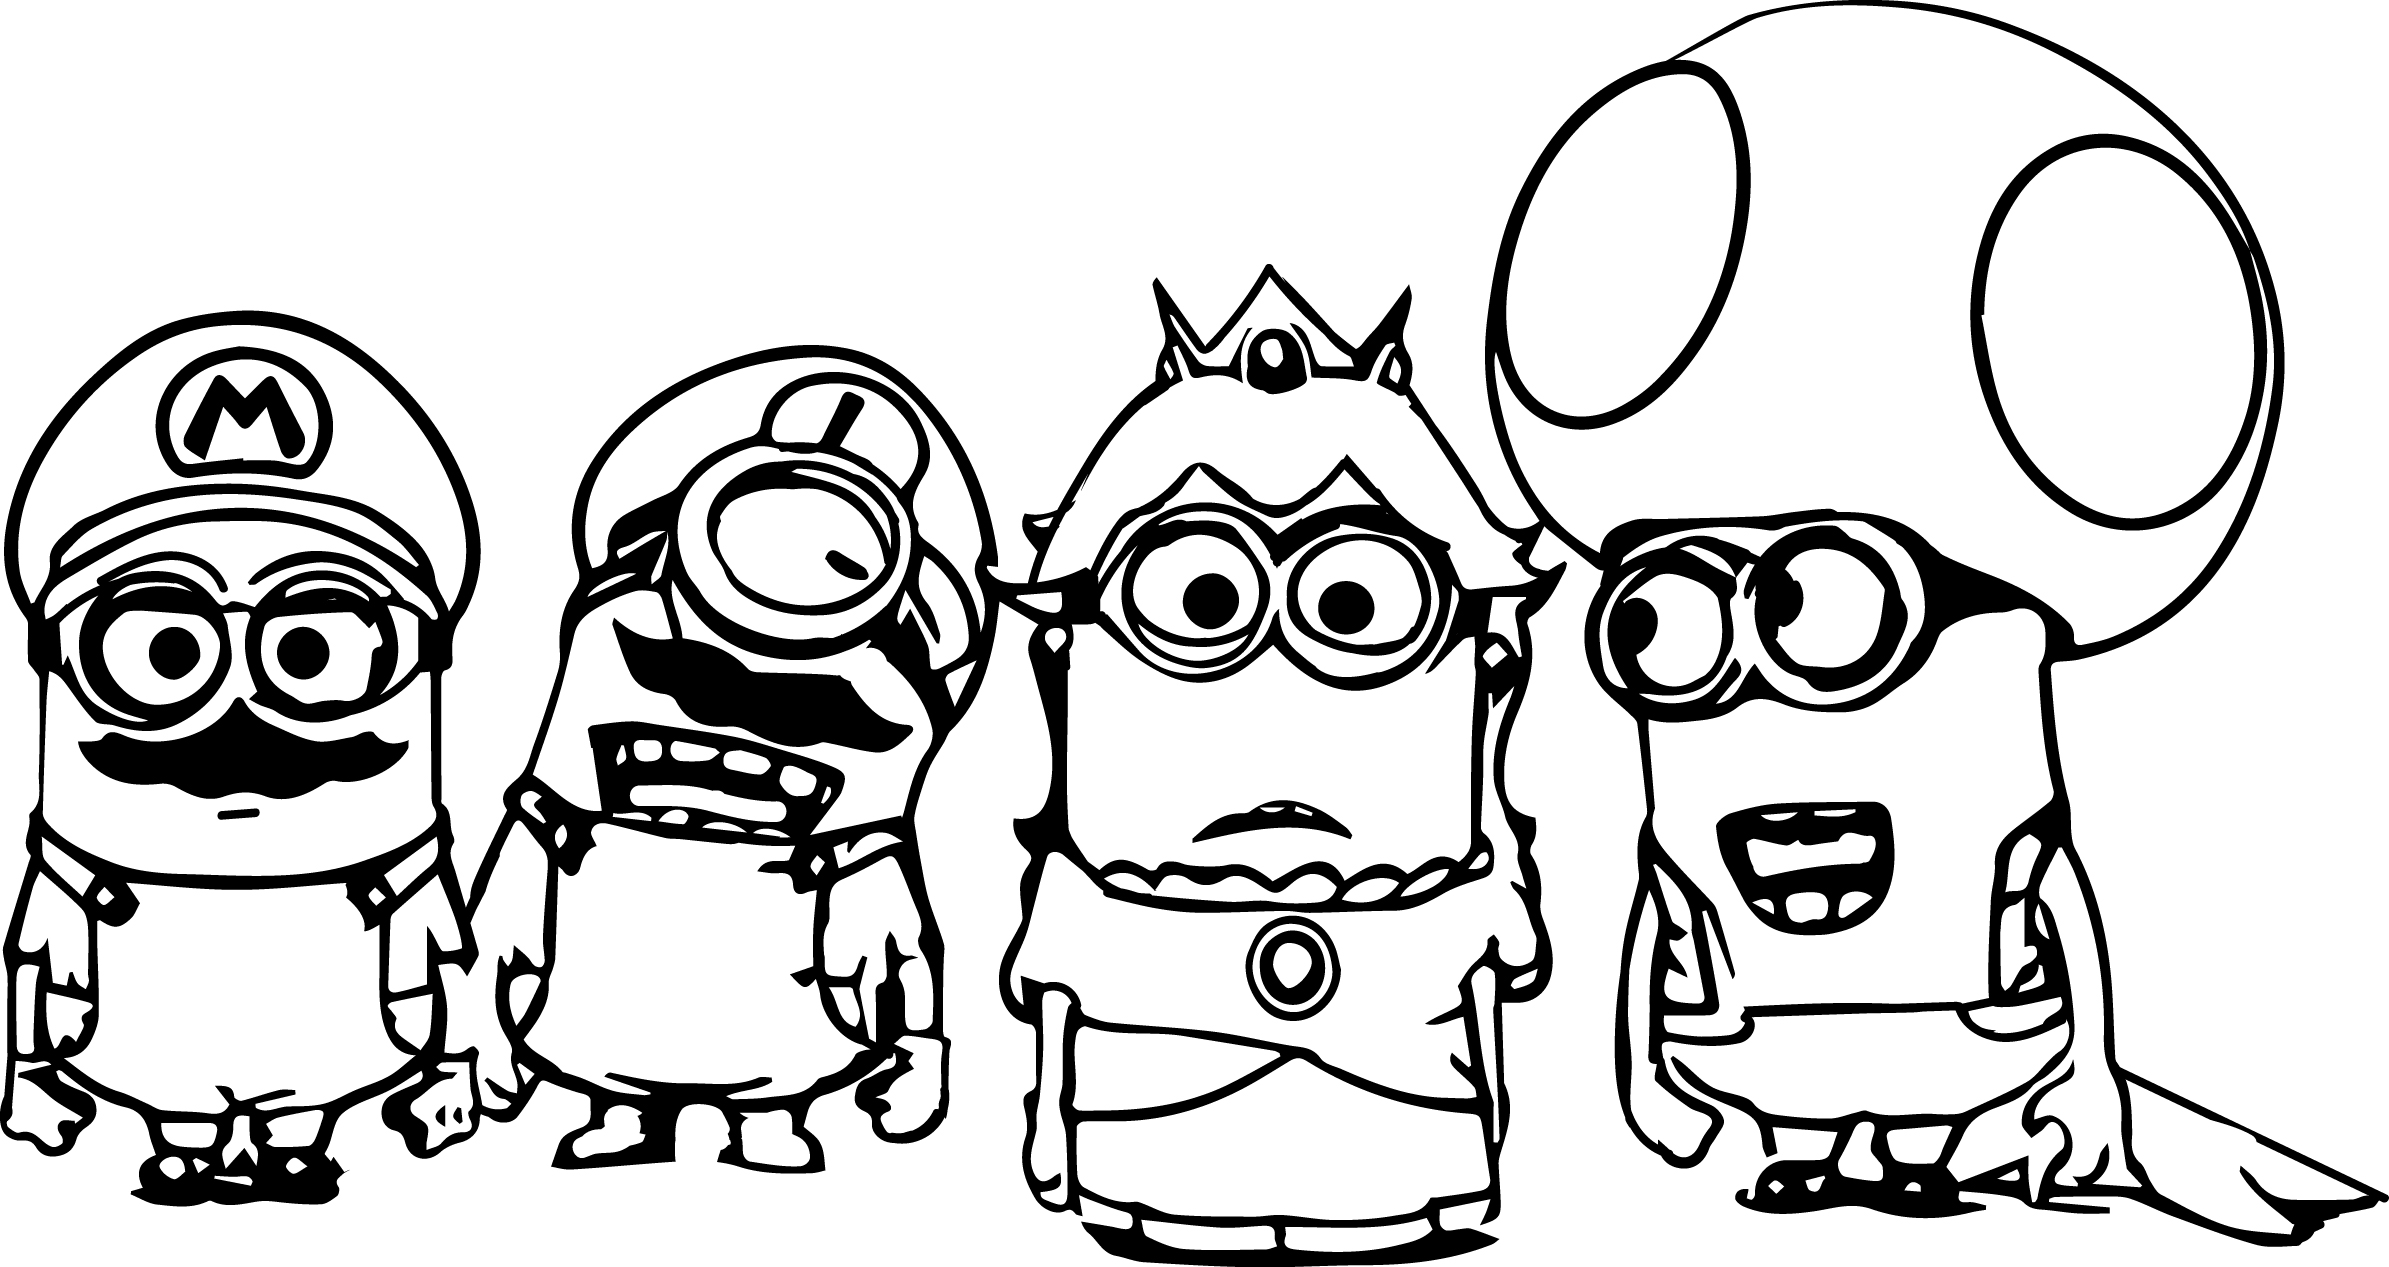 coloring pages minions angen - photo#11